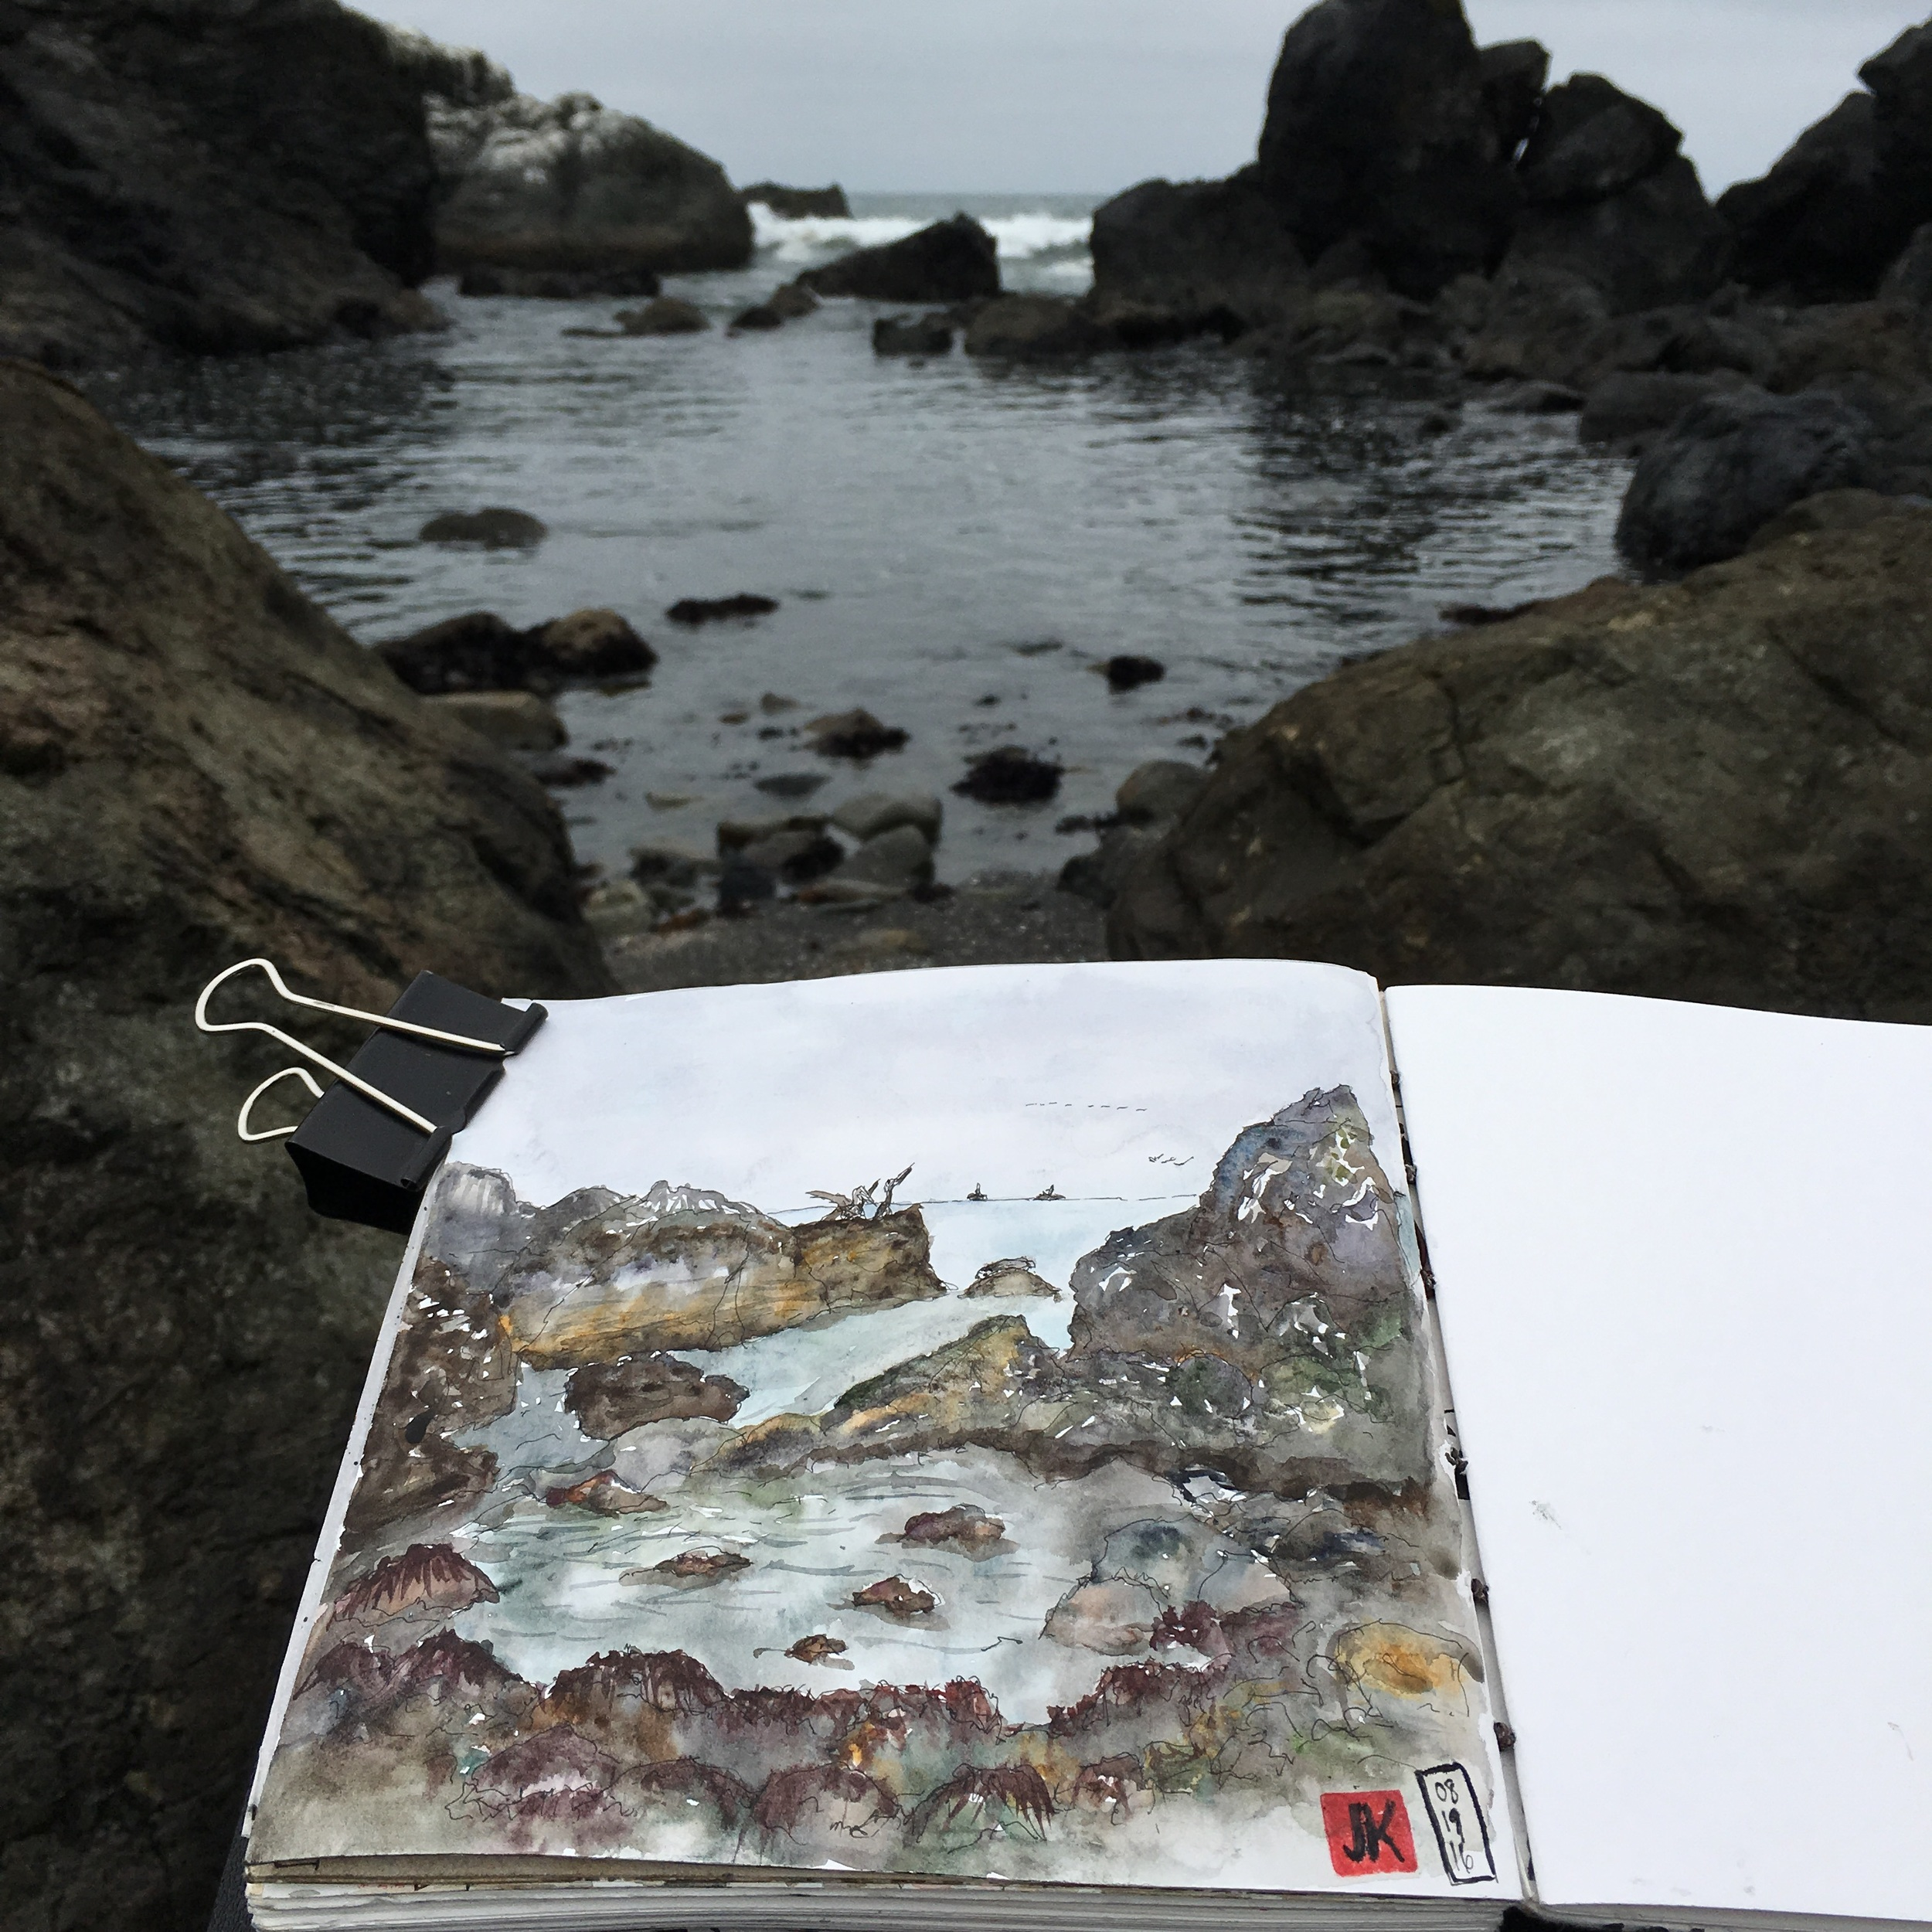 Using my easel at the tide pools